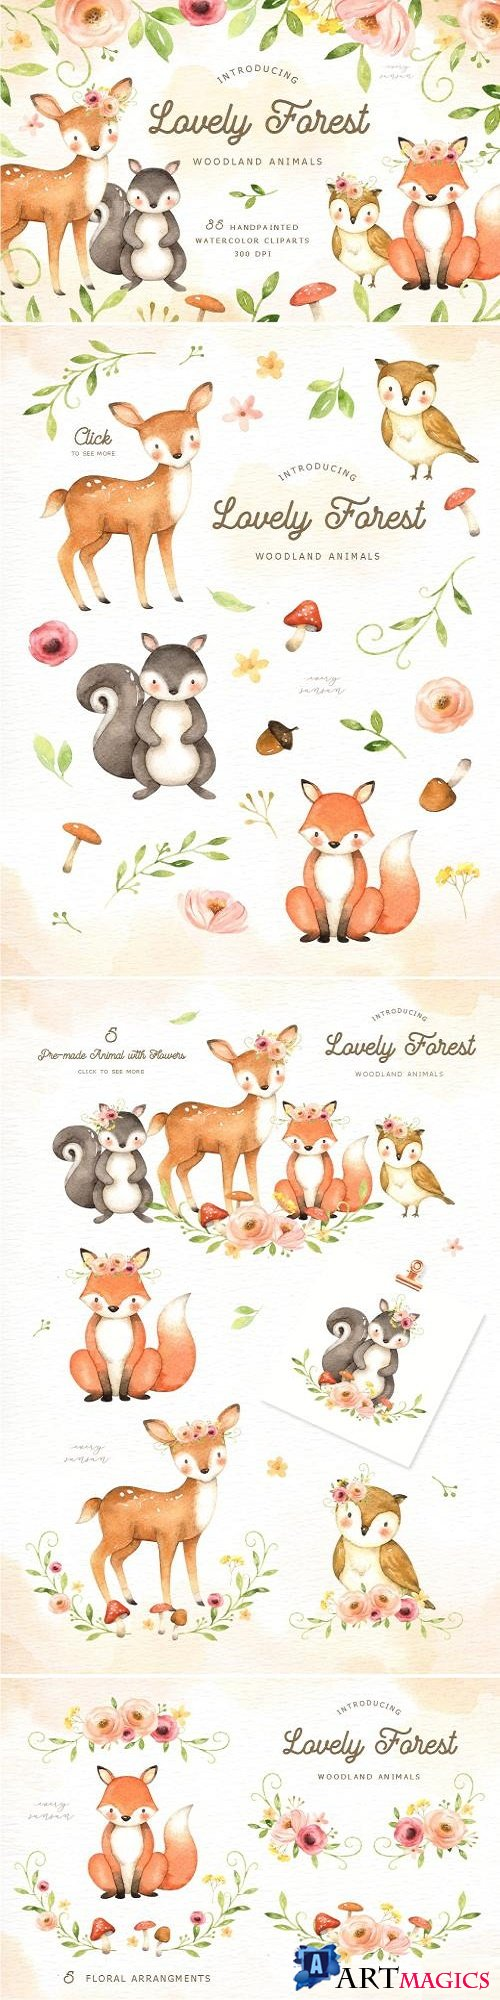 Lovely Forest Watercolor Clip Art - 2893425